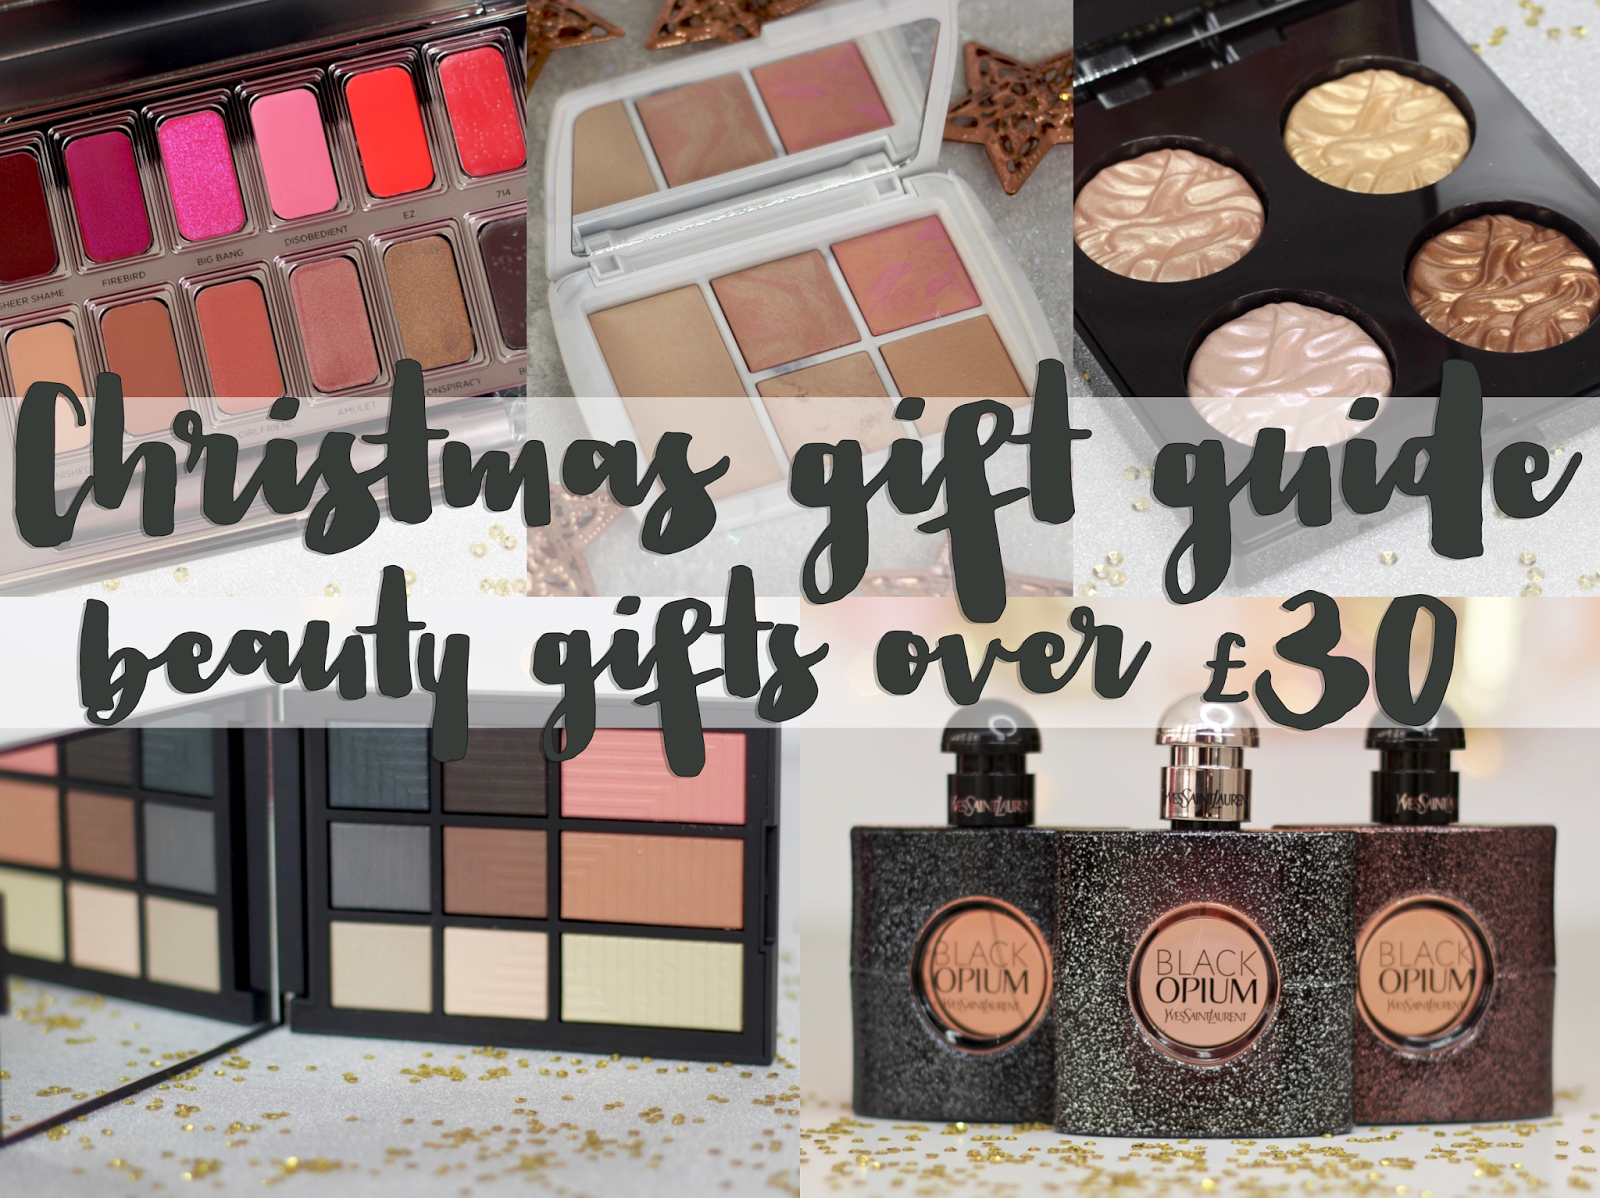 christmas gift guide time is finally here and i thought id start off by going big or going home so first up is beauty gifts over 30